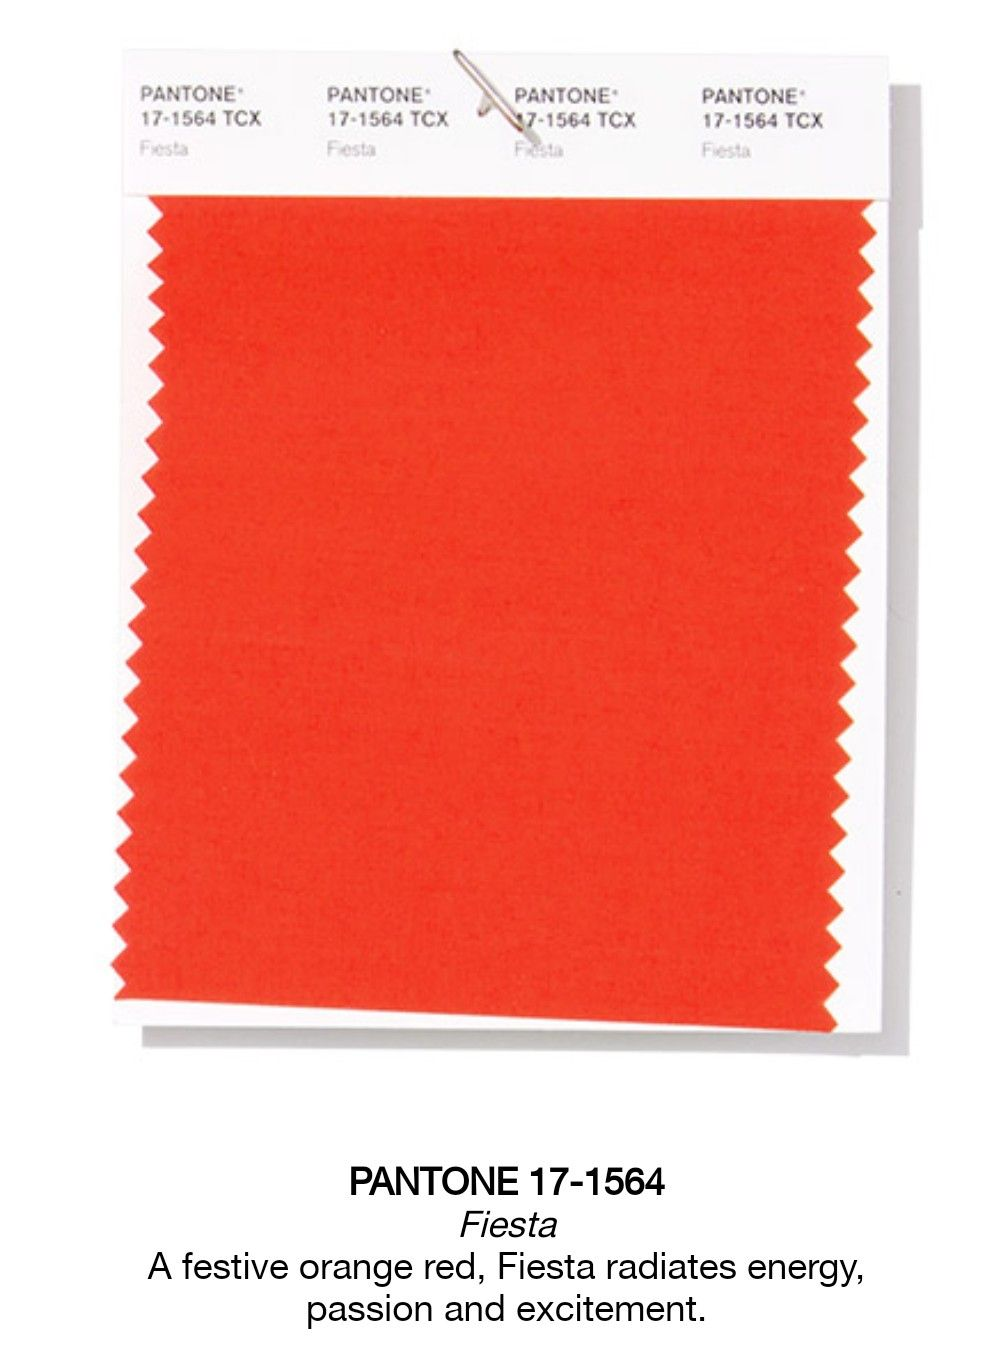 Pantone Color 2016 Pantone 17 1564 Fiesta Pantone Colors 2016 In 2019 Fiesta